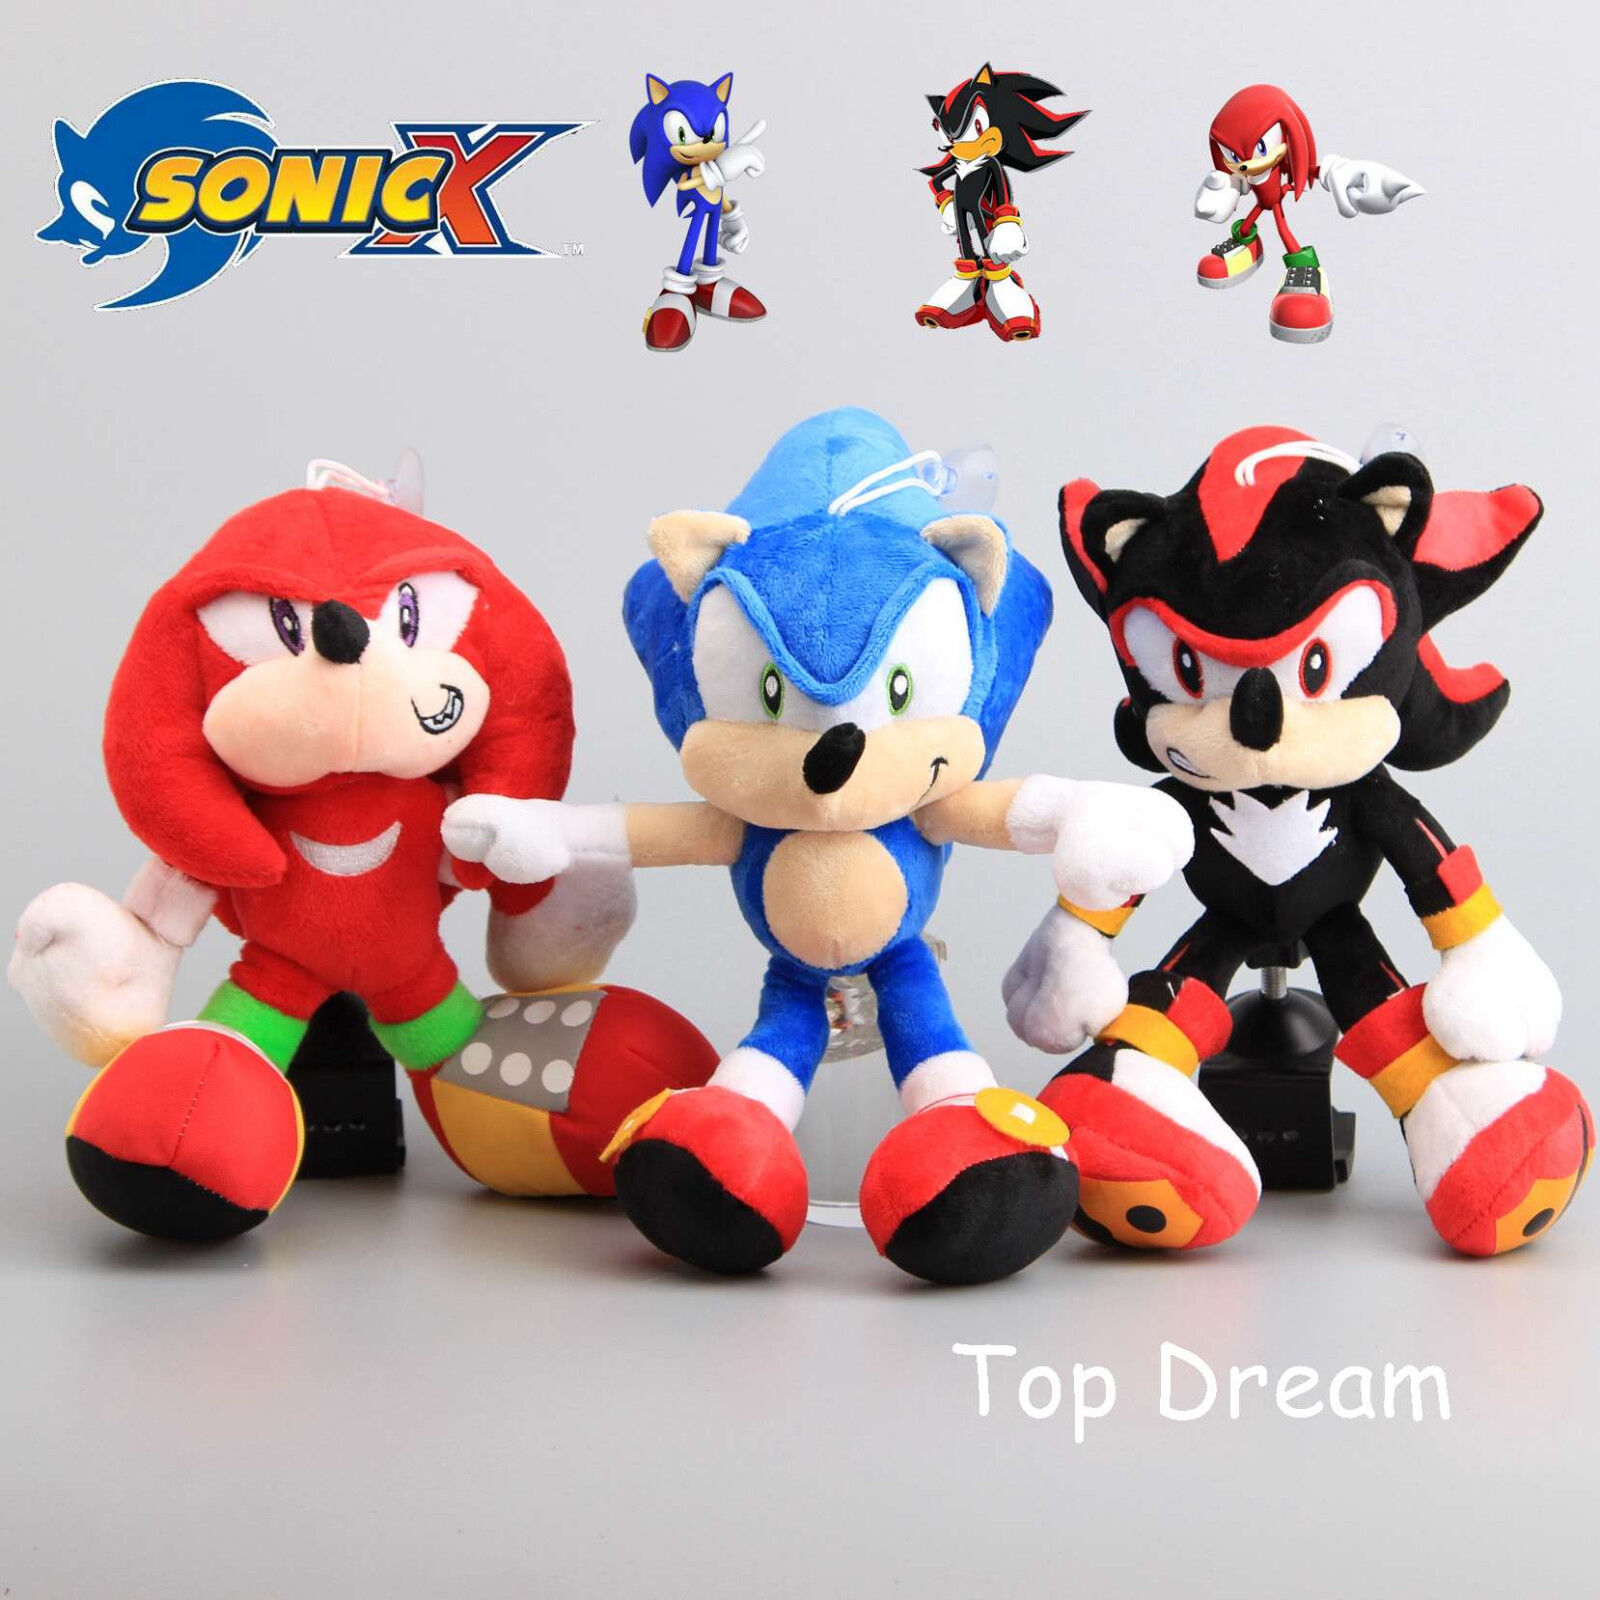 Game Sonic The Hedgehog Shadow Hedgehog Knuckles The Echidna Plush